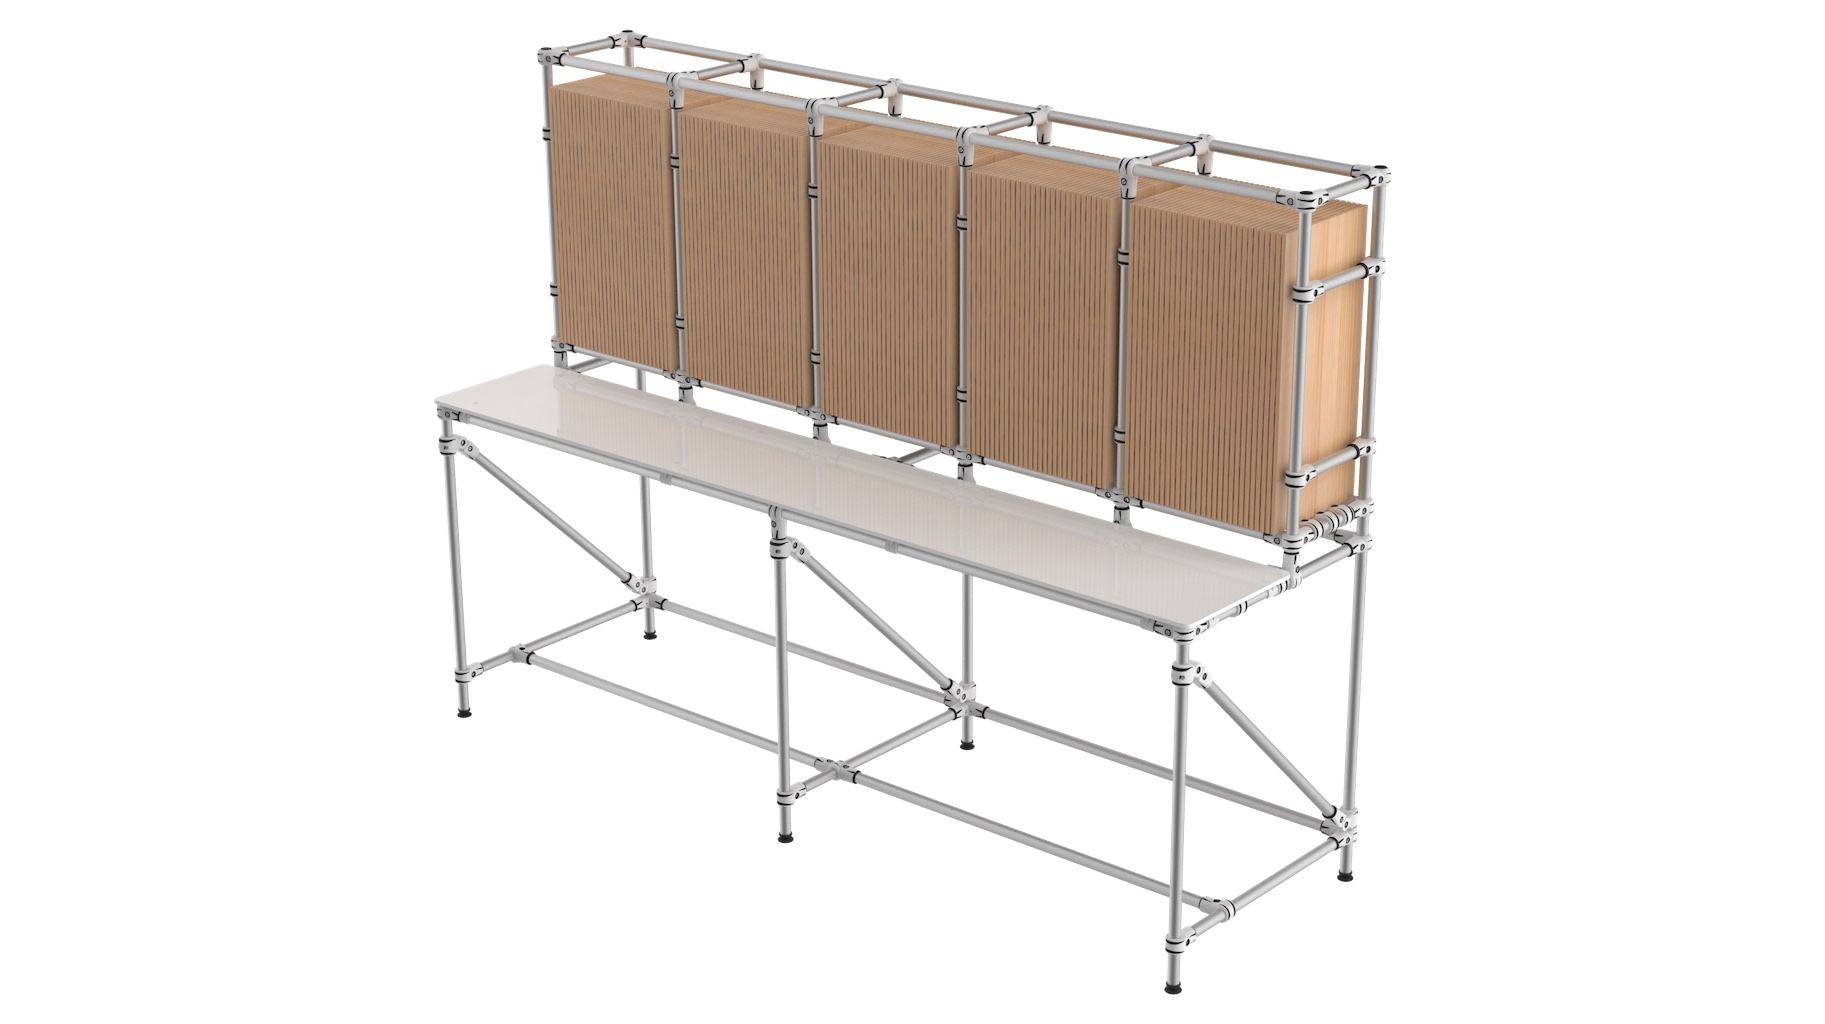 Food industry - Bespoke workbench and order preparation for food industry.